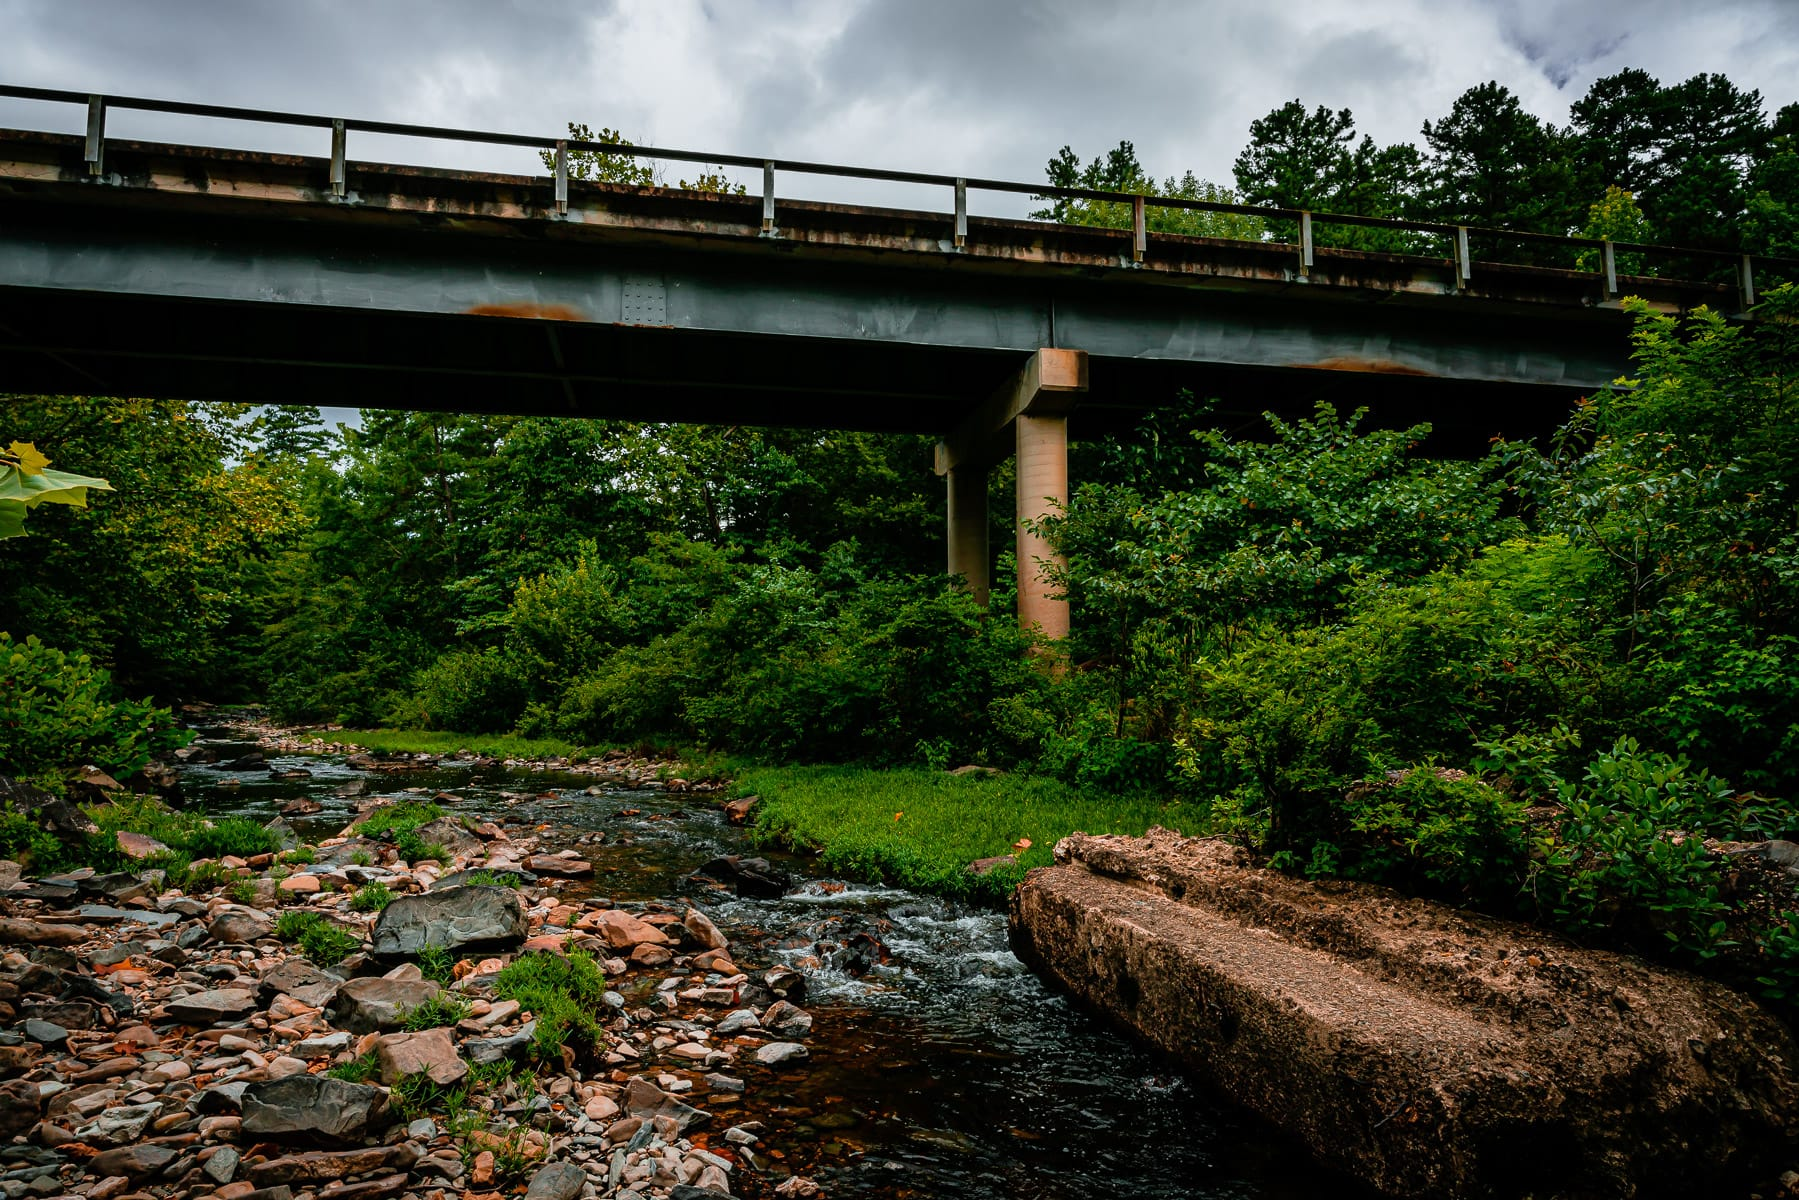 A bridge for US-278 passes over the Cossatot River, Arkansas.